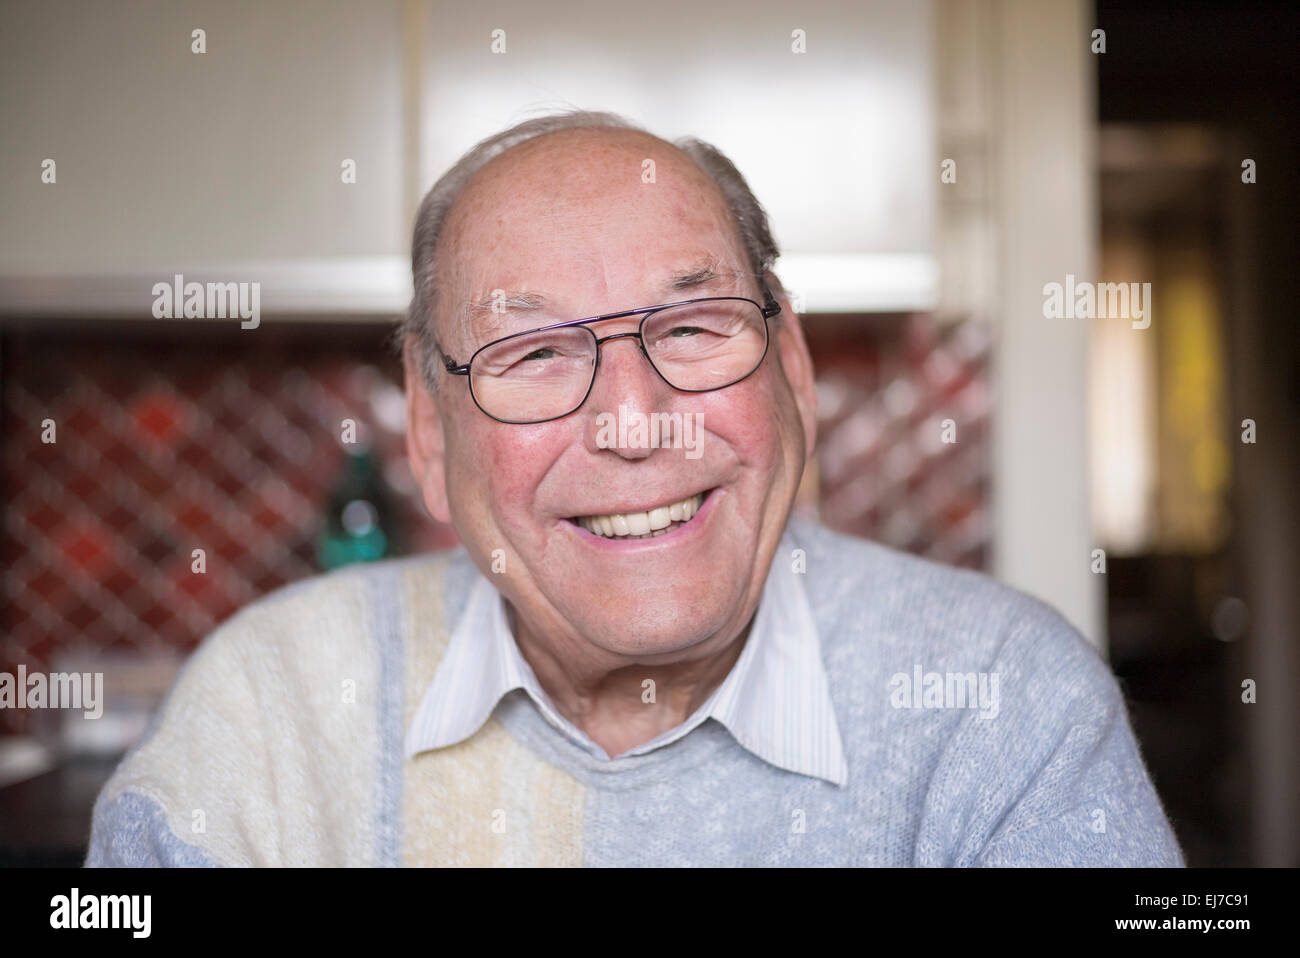 80s smiling elderly man portrait Photo Stock